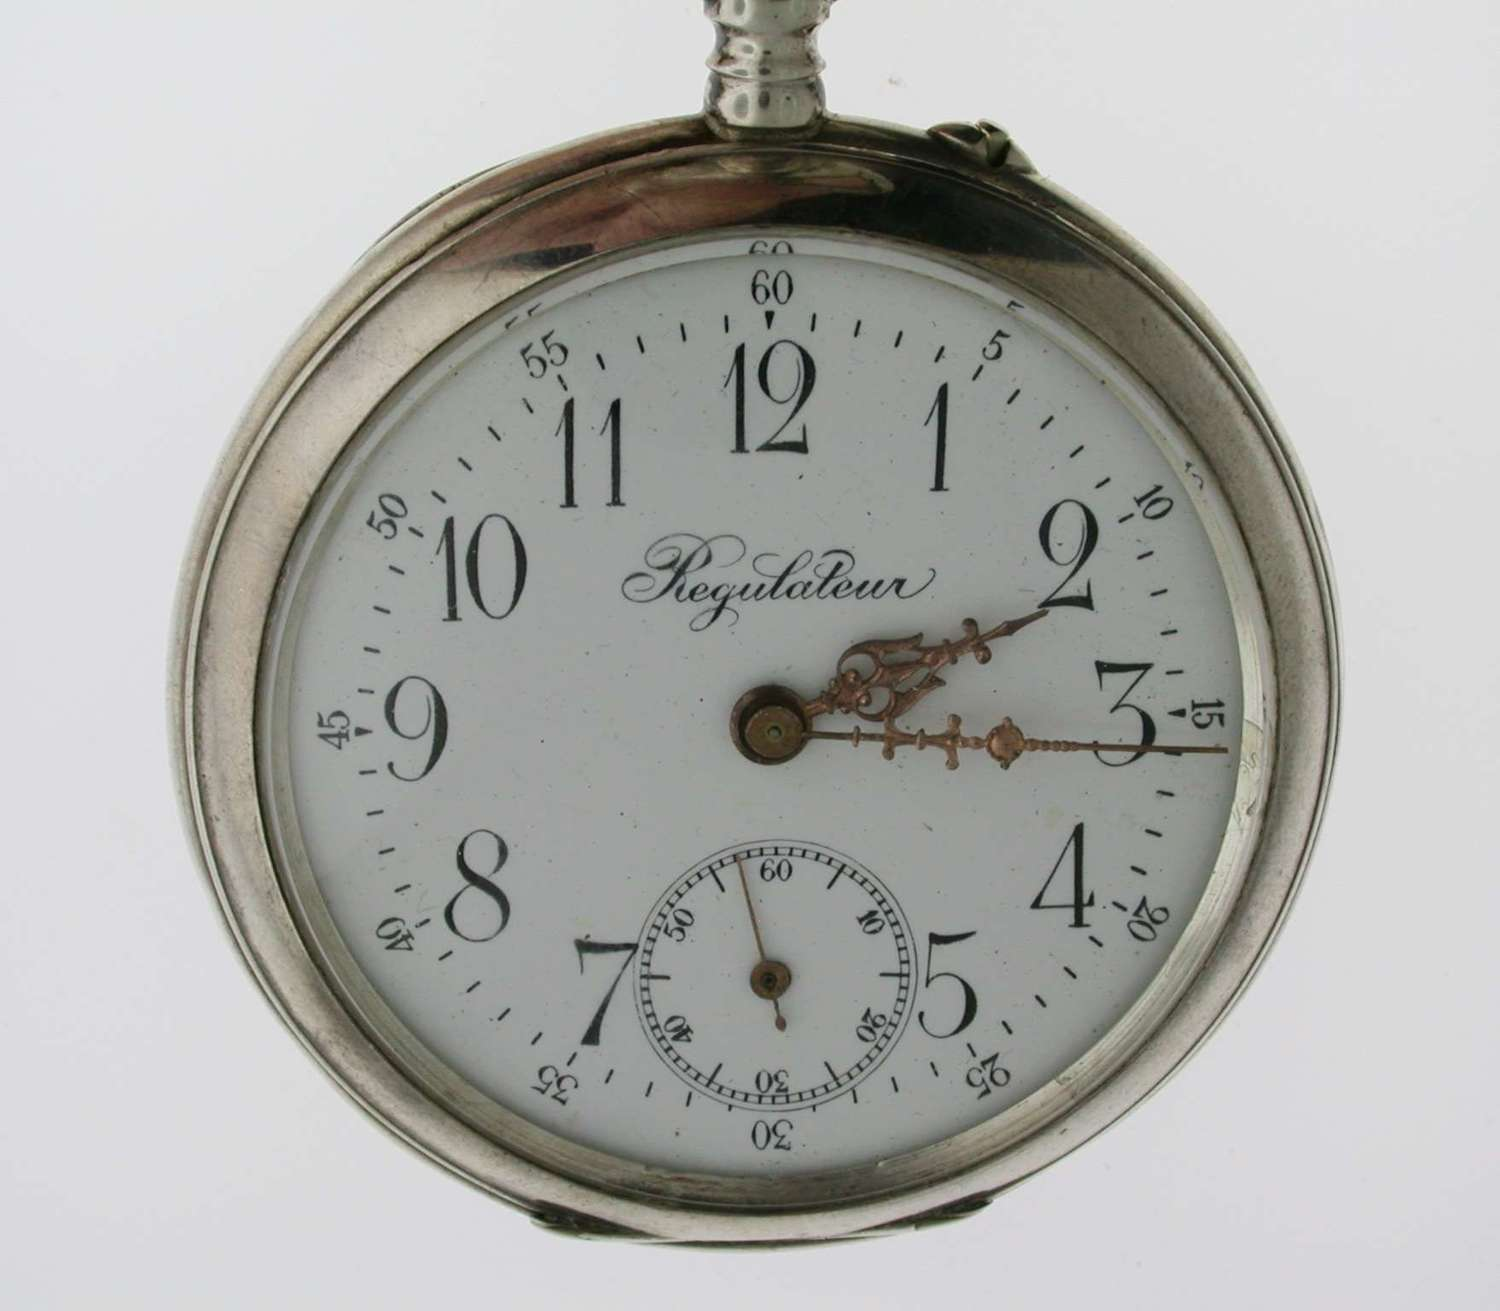 Silver Large Goliath Regulateur Pocket Watch with Swedish Crest